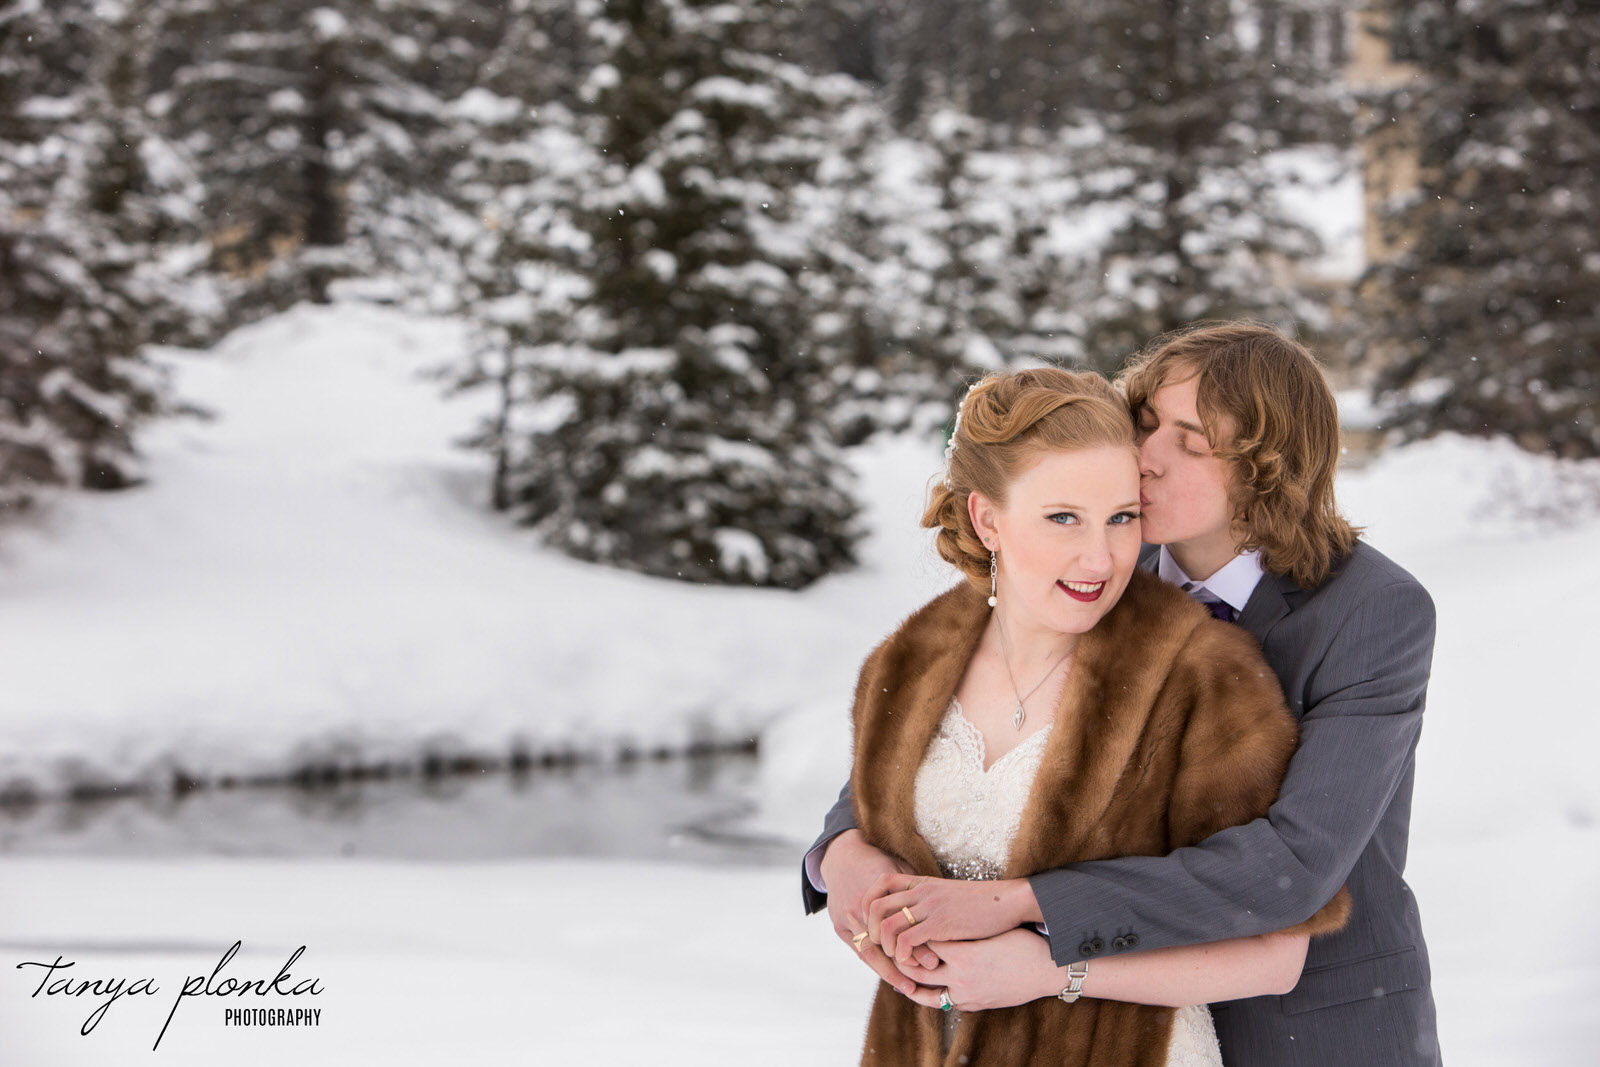 groom kissing bride on cheek at snowy Lake Louise winter wedding